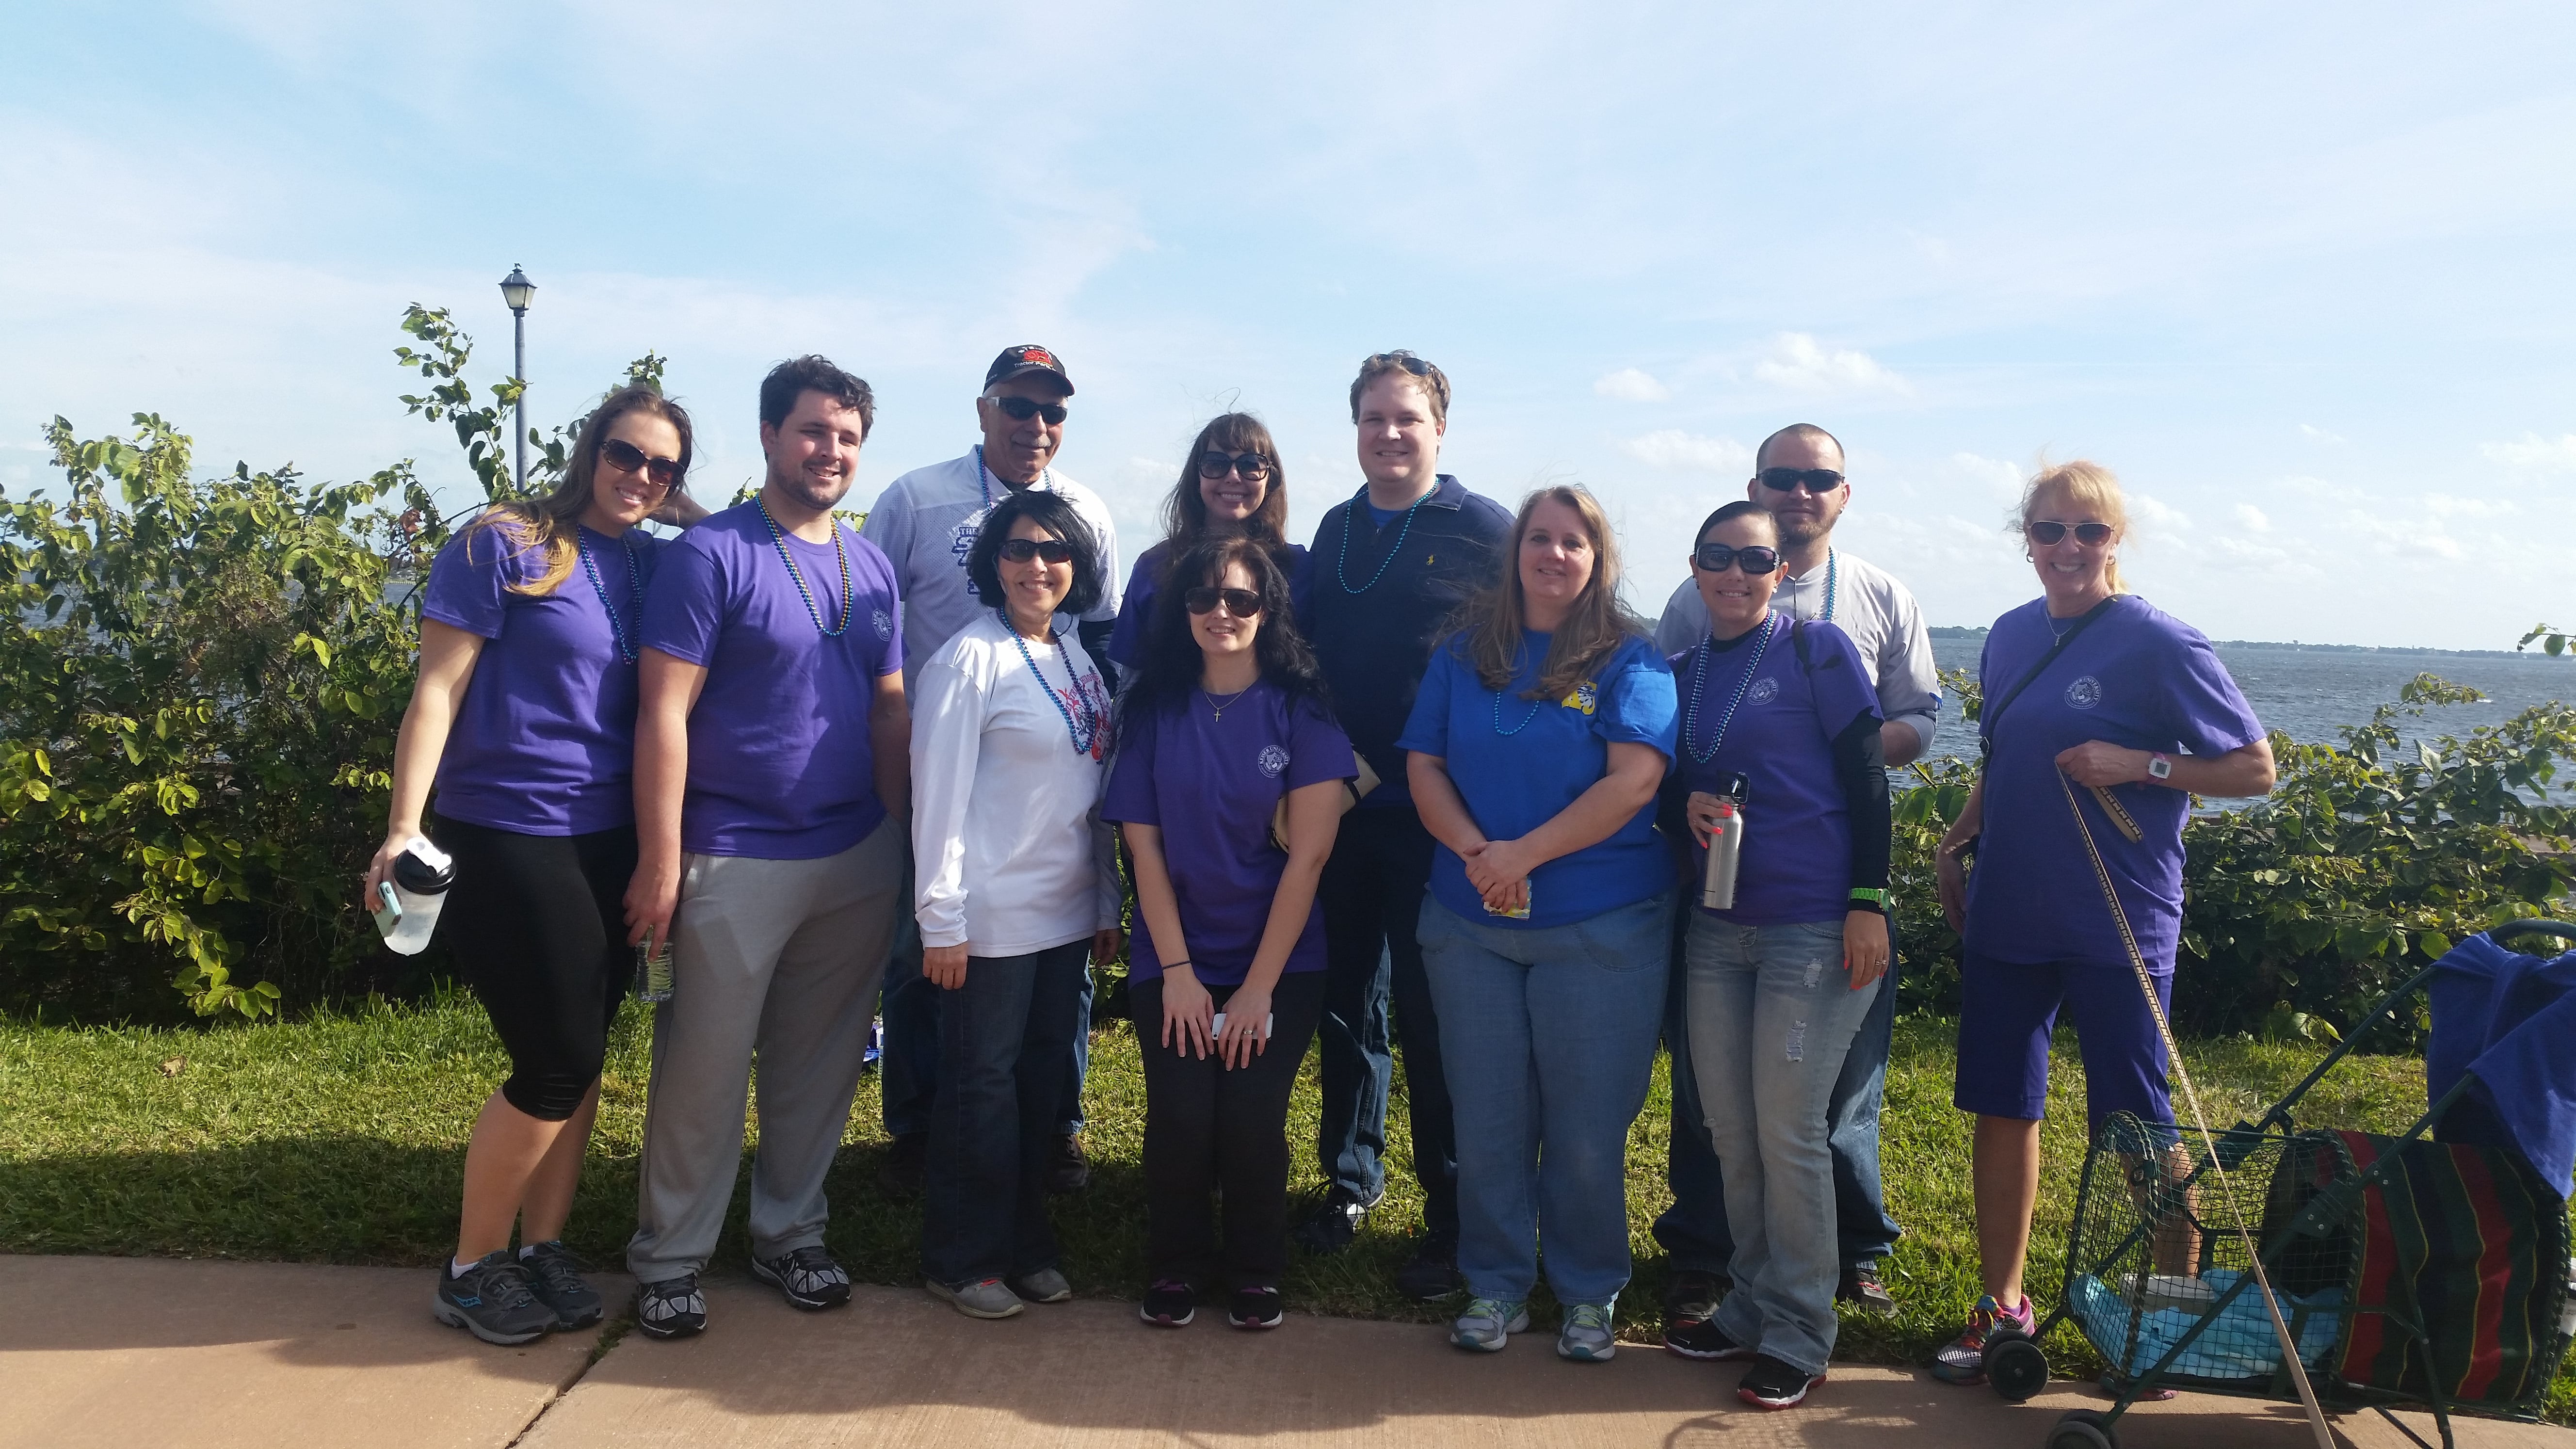 Port St. Lucie Participates in First Annual Martin County Out of the Darkness Walk